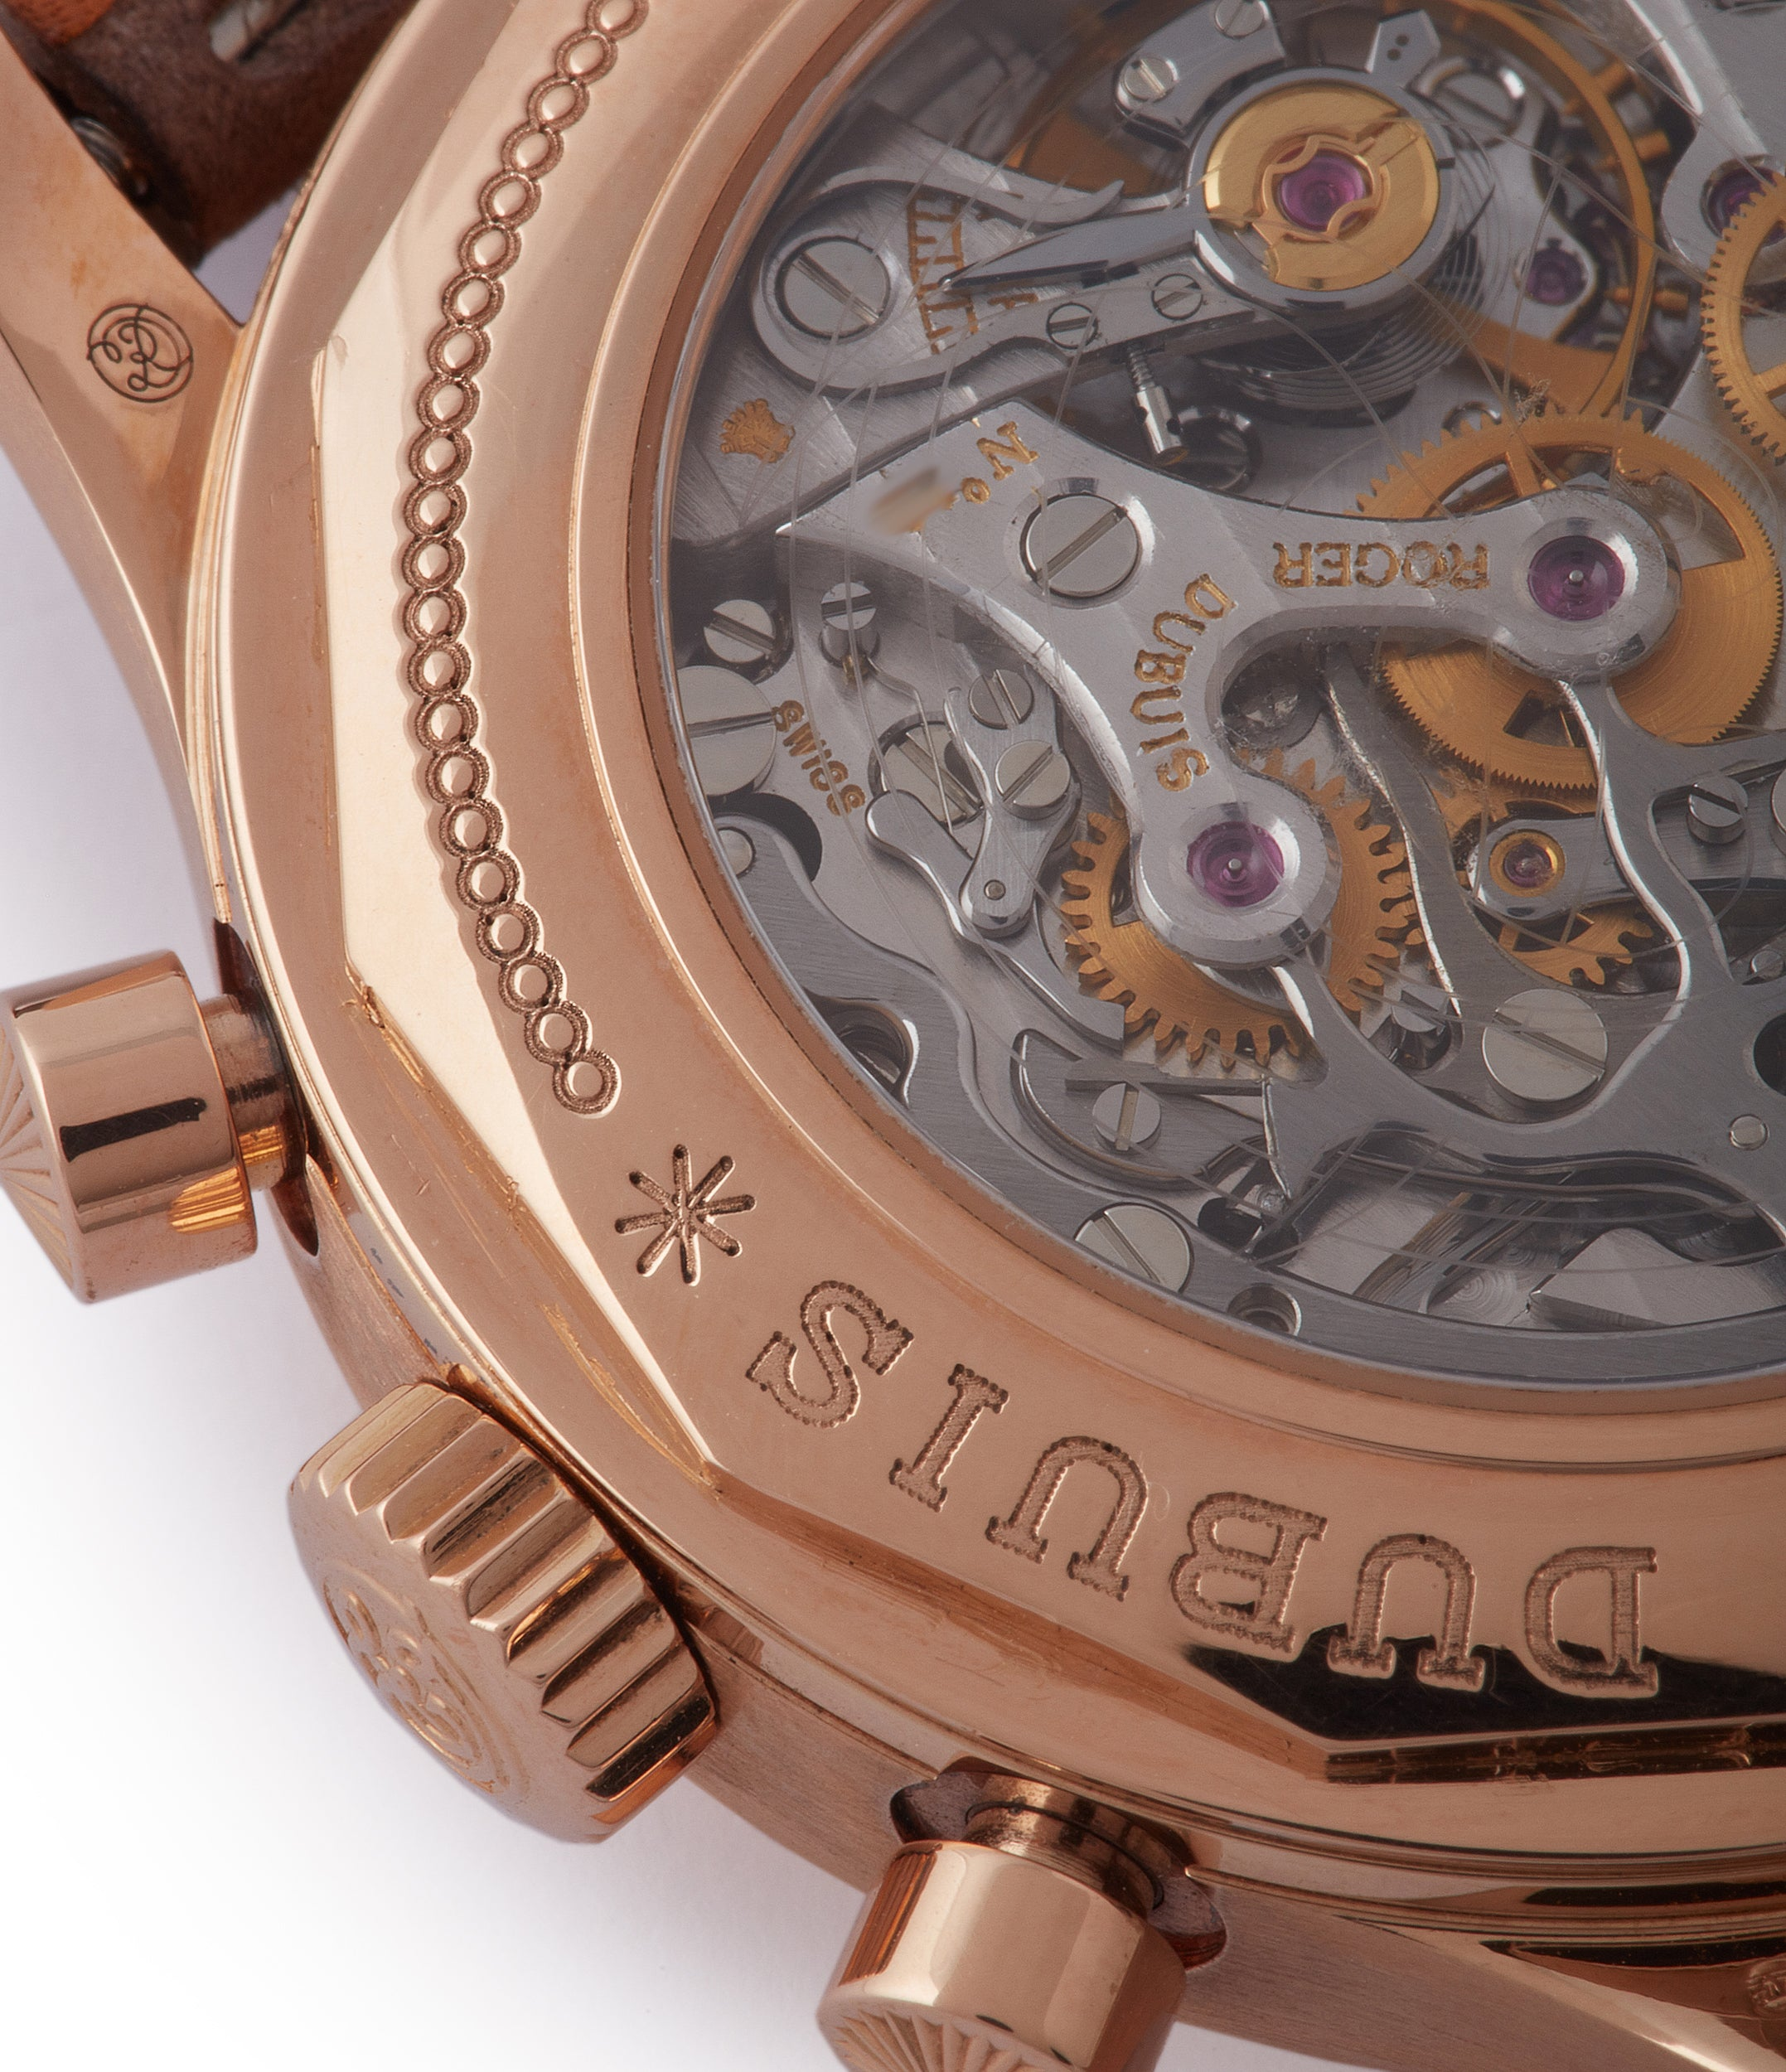 RD5630 Roger Dubuis Hommage bi-retrograde Chronograph H40 560 limited edition rare rose gold lacquer dial watch for sale online at A Collected Man London UK specialist of rare watches